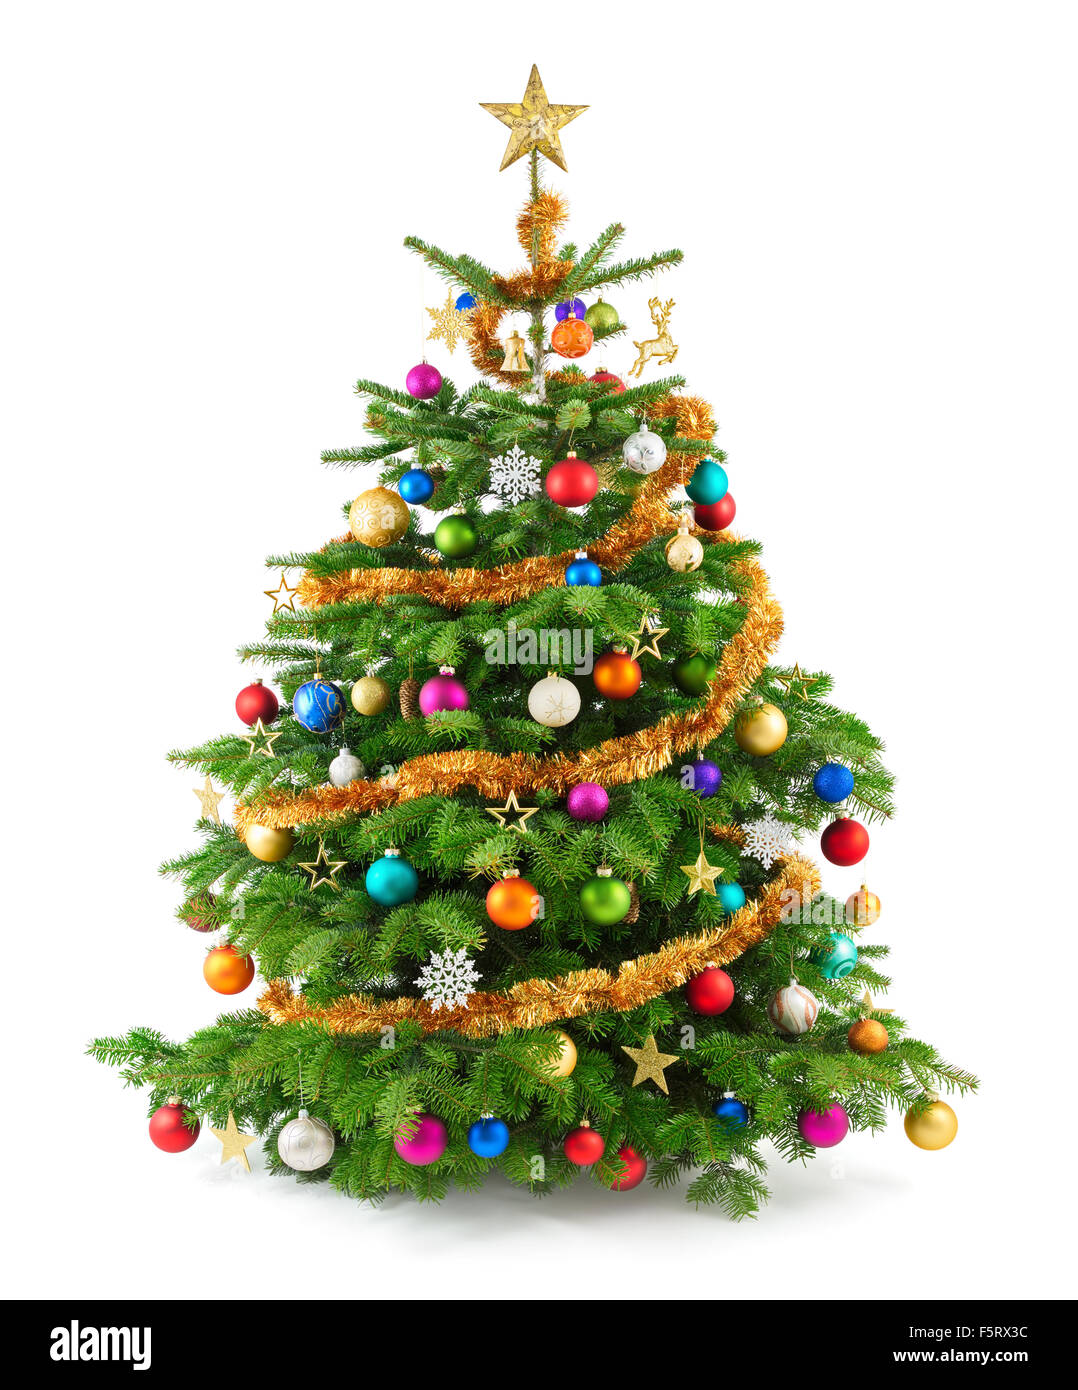 Joyful studio shot of a Christmas tree with colorful ornaments, isolated on white - Stock Image